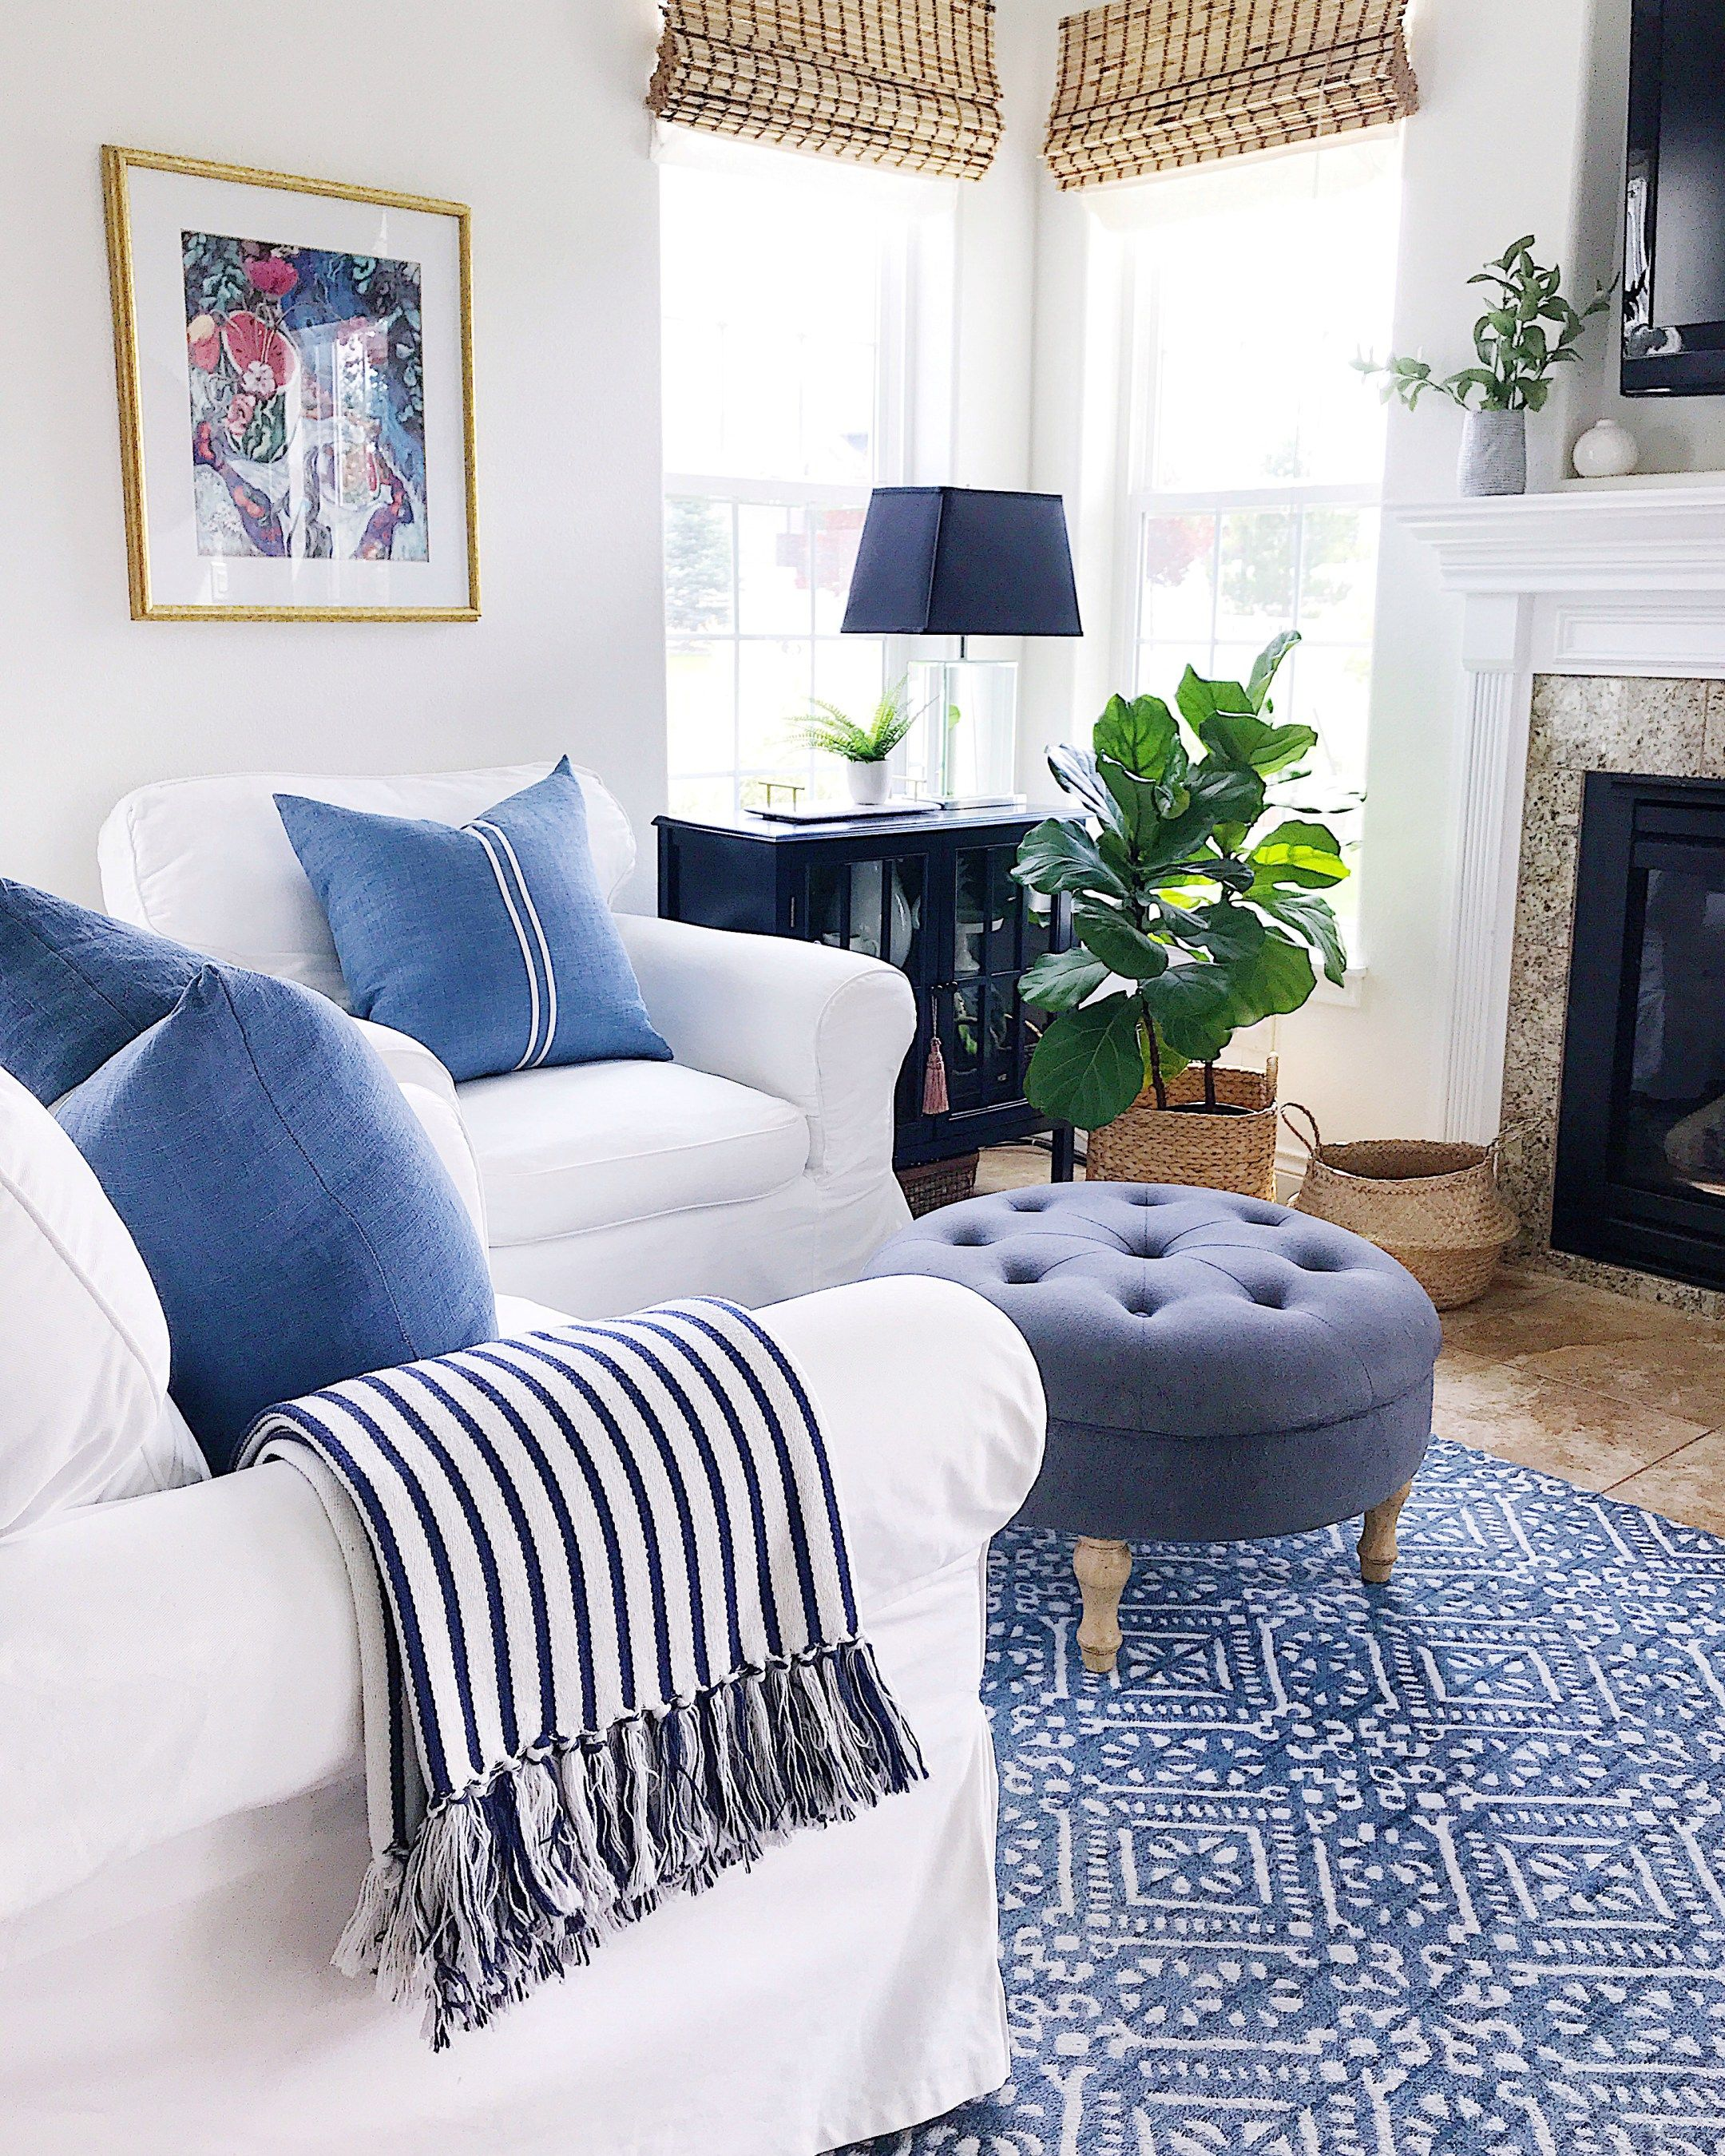 blue home decor on summer home tour decorating ideas jane at home blue and white living room blue living room summer home decor summer home tour decorating ideas